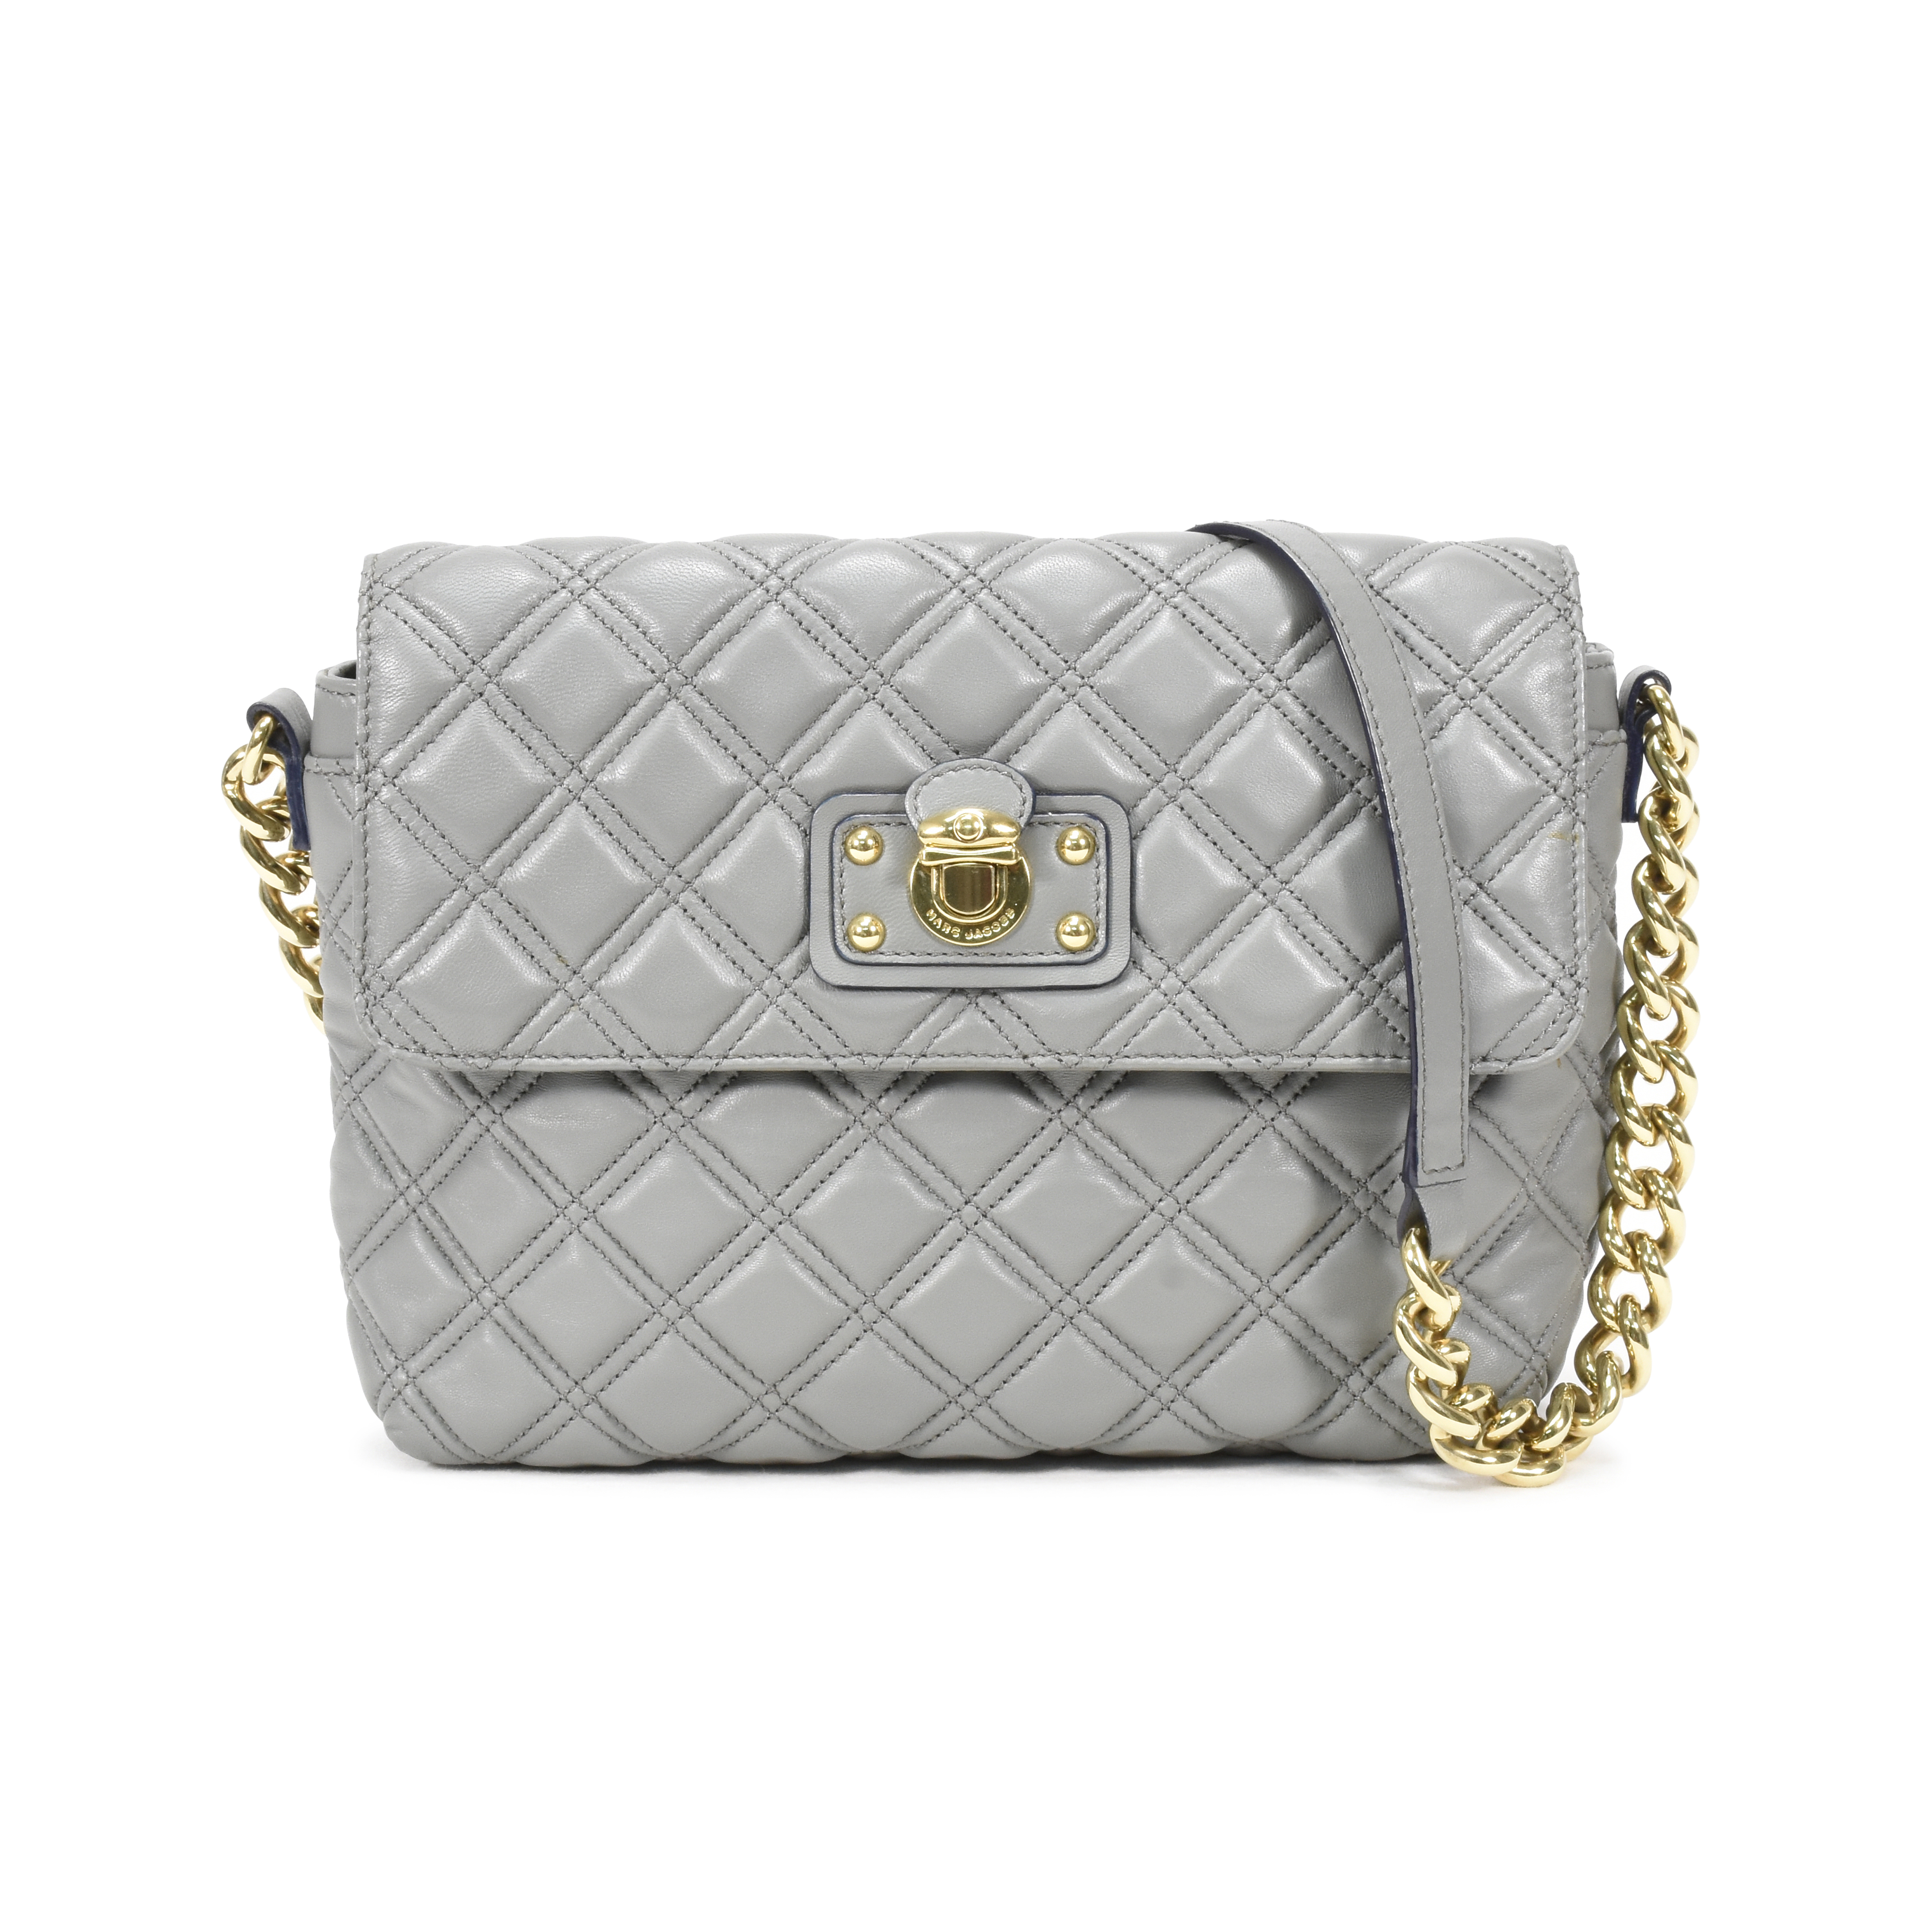 4a642990a5824 Authentic Pre Owned Marc Jacobs Skinny Single Quilted Bag Pss 364